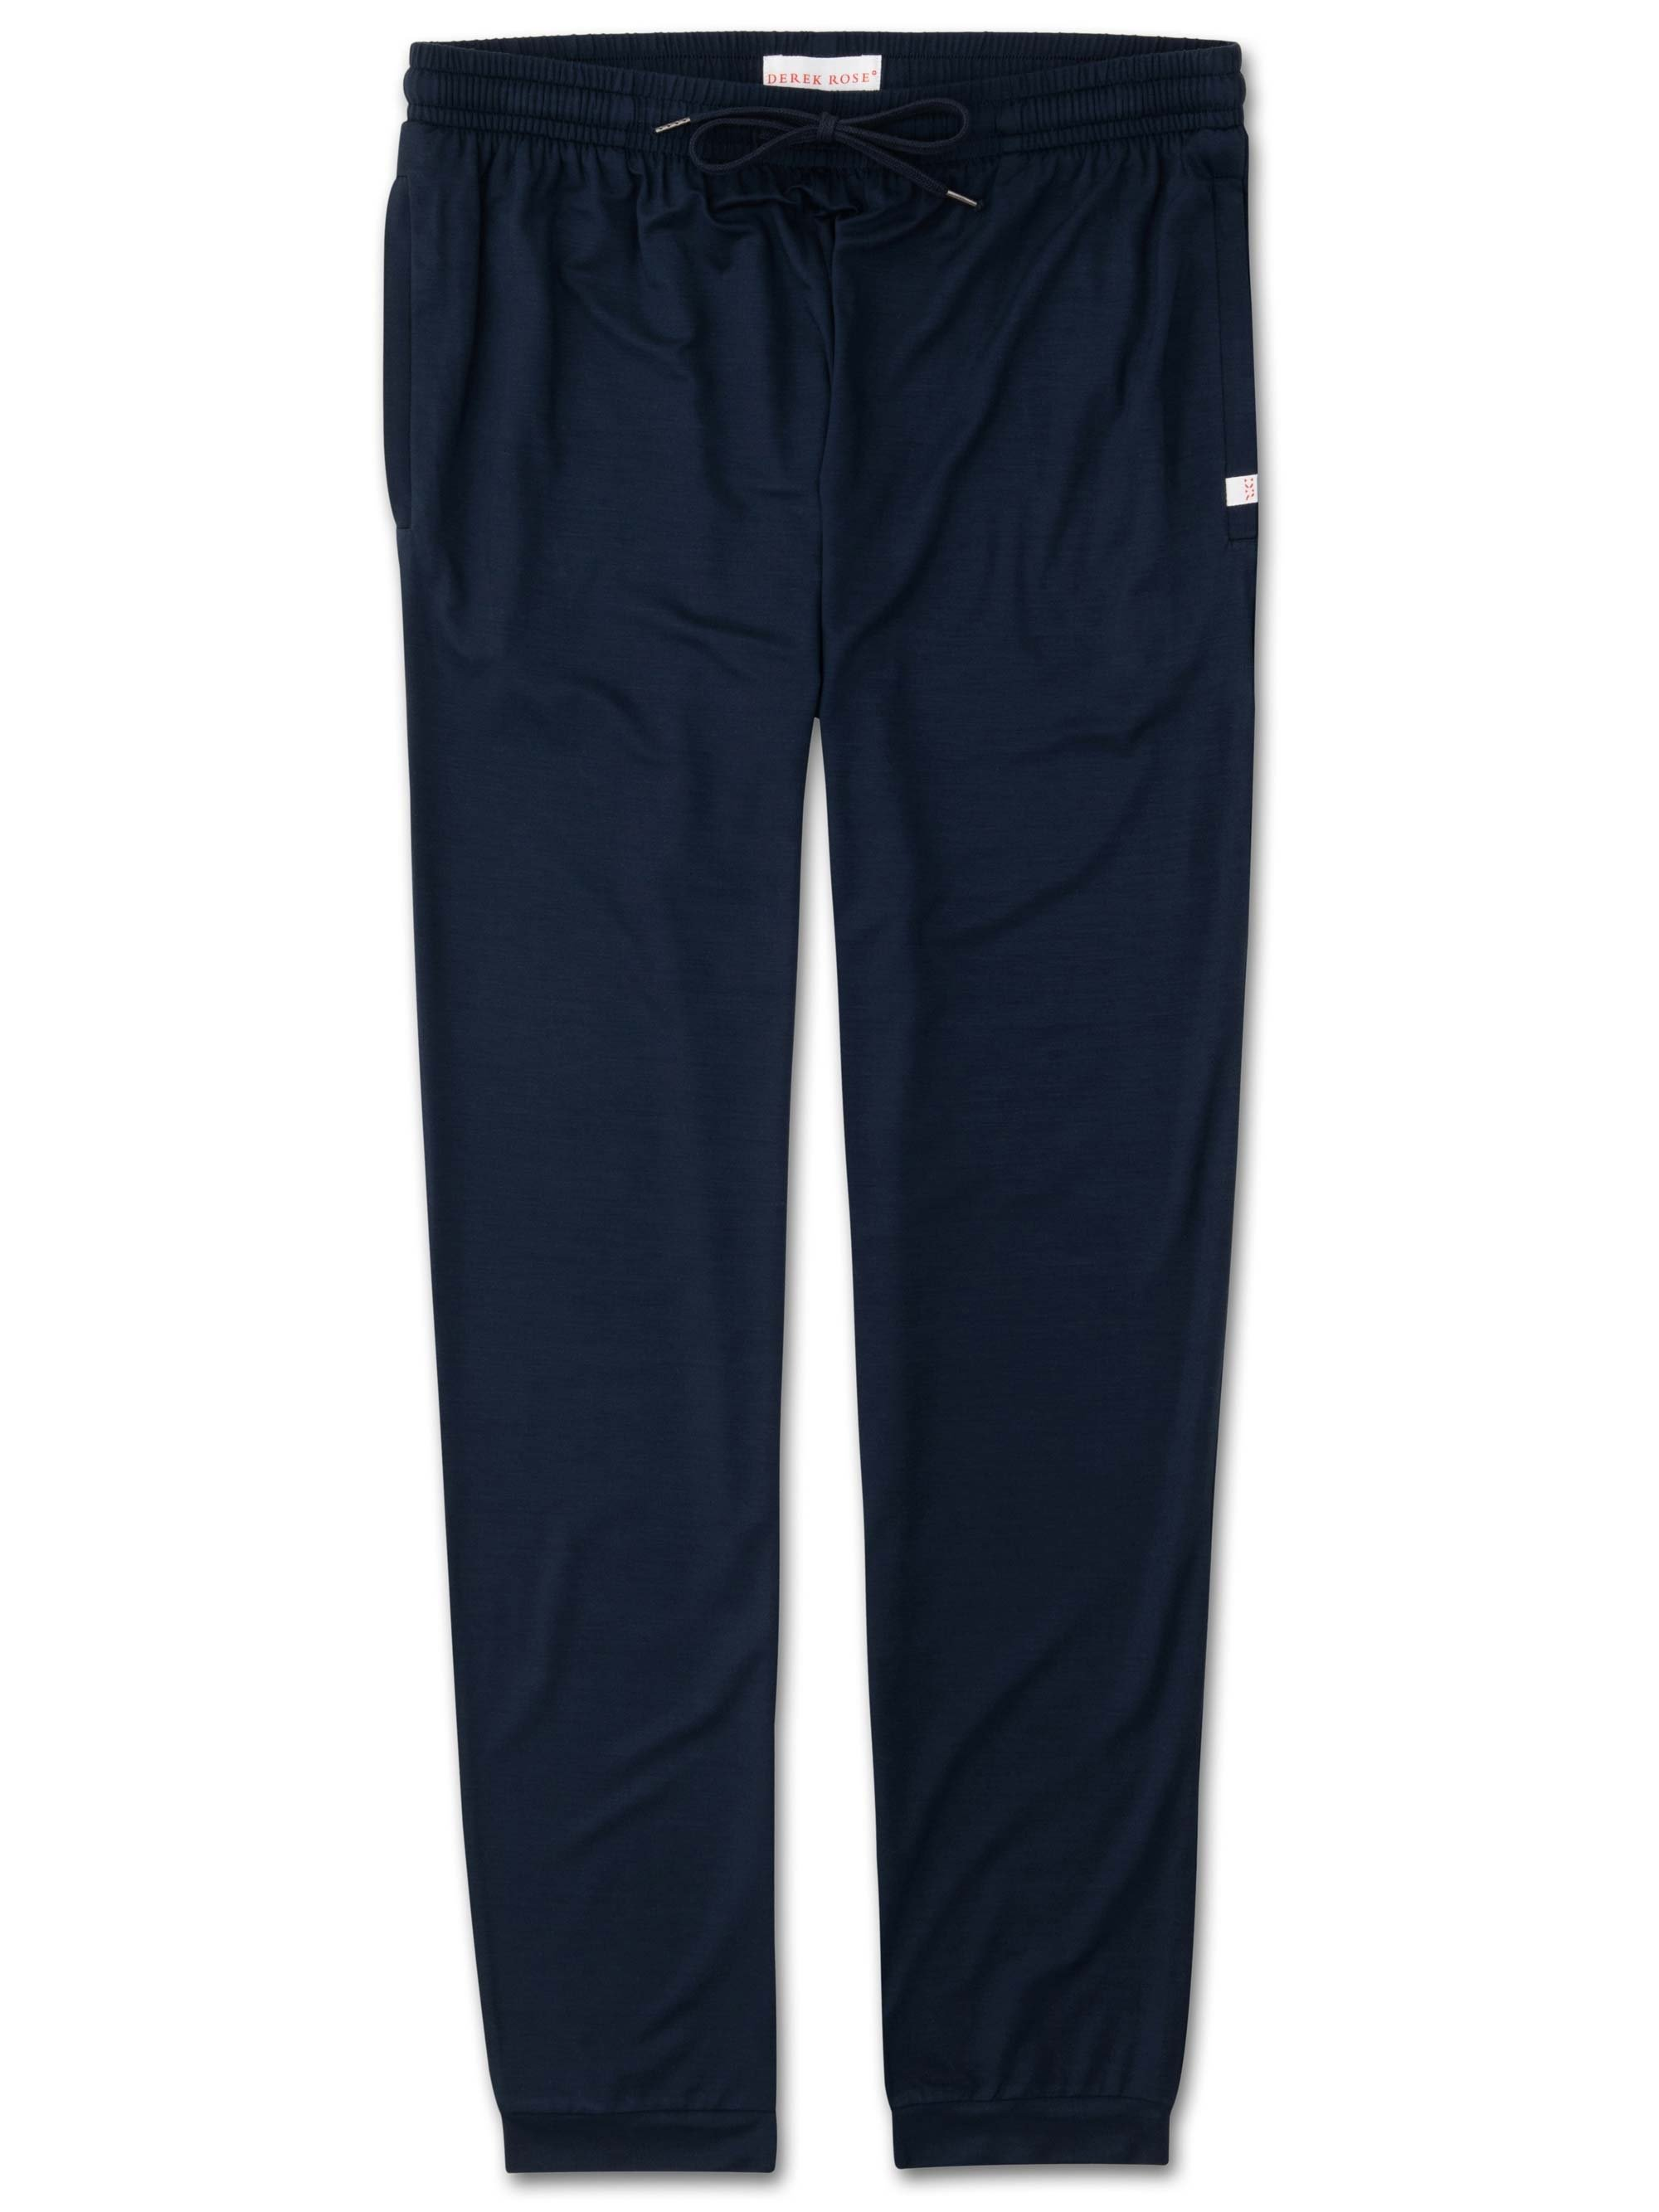 Men's Jersey Track Pants Basel Micro Modal Stretch Navy